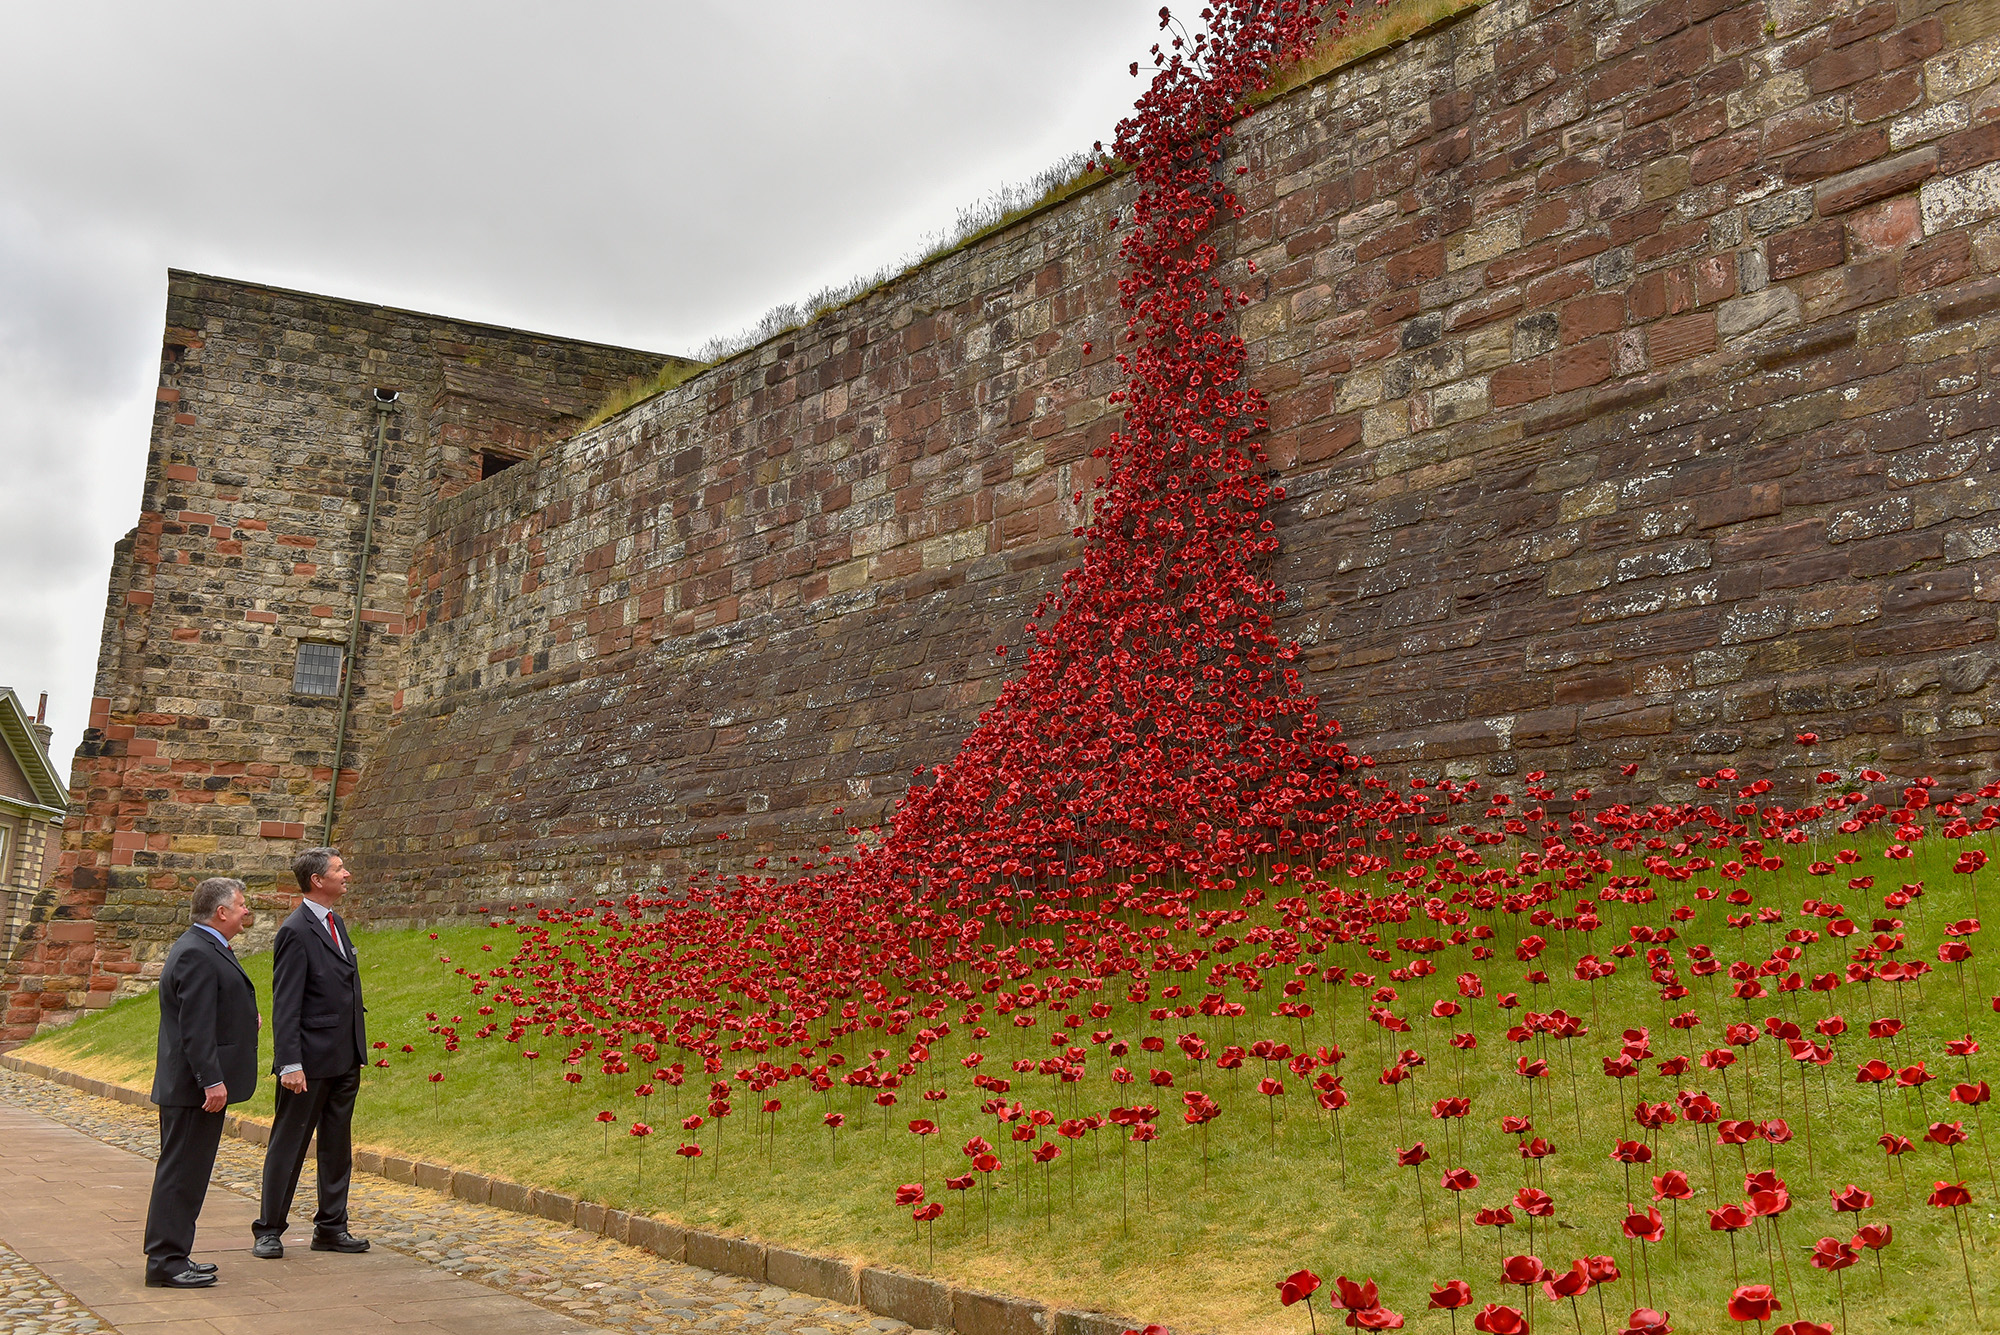 The iconic poppy sculpture: Weeping Window